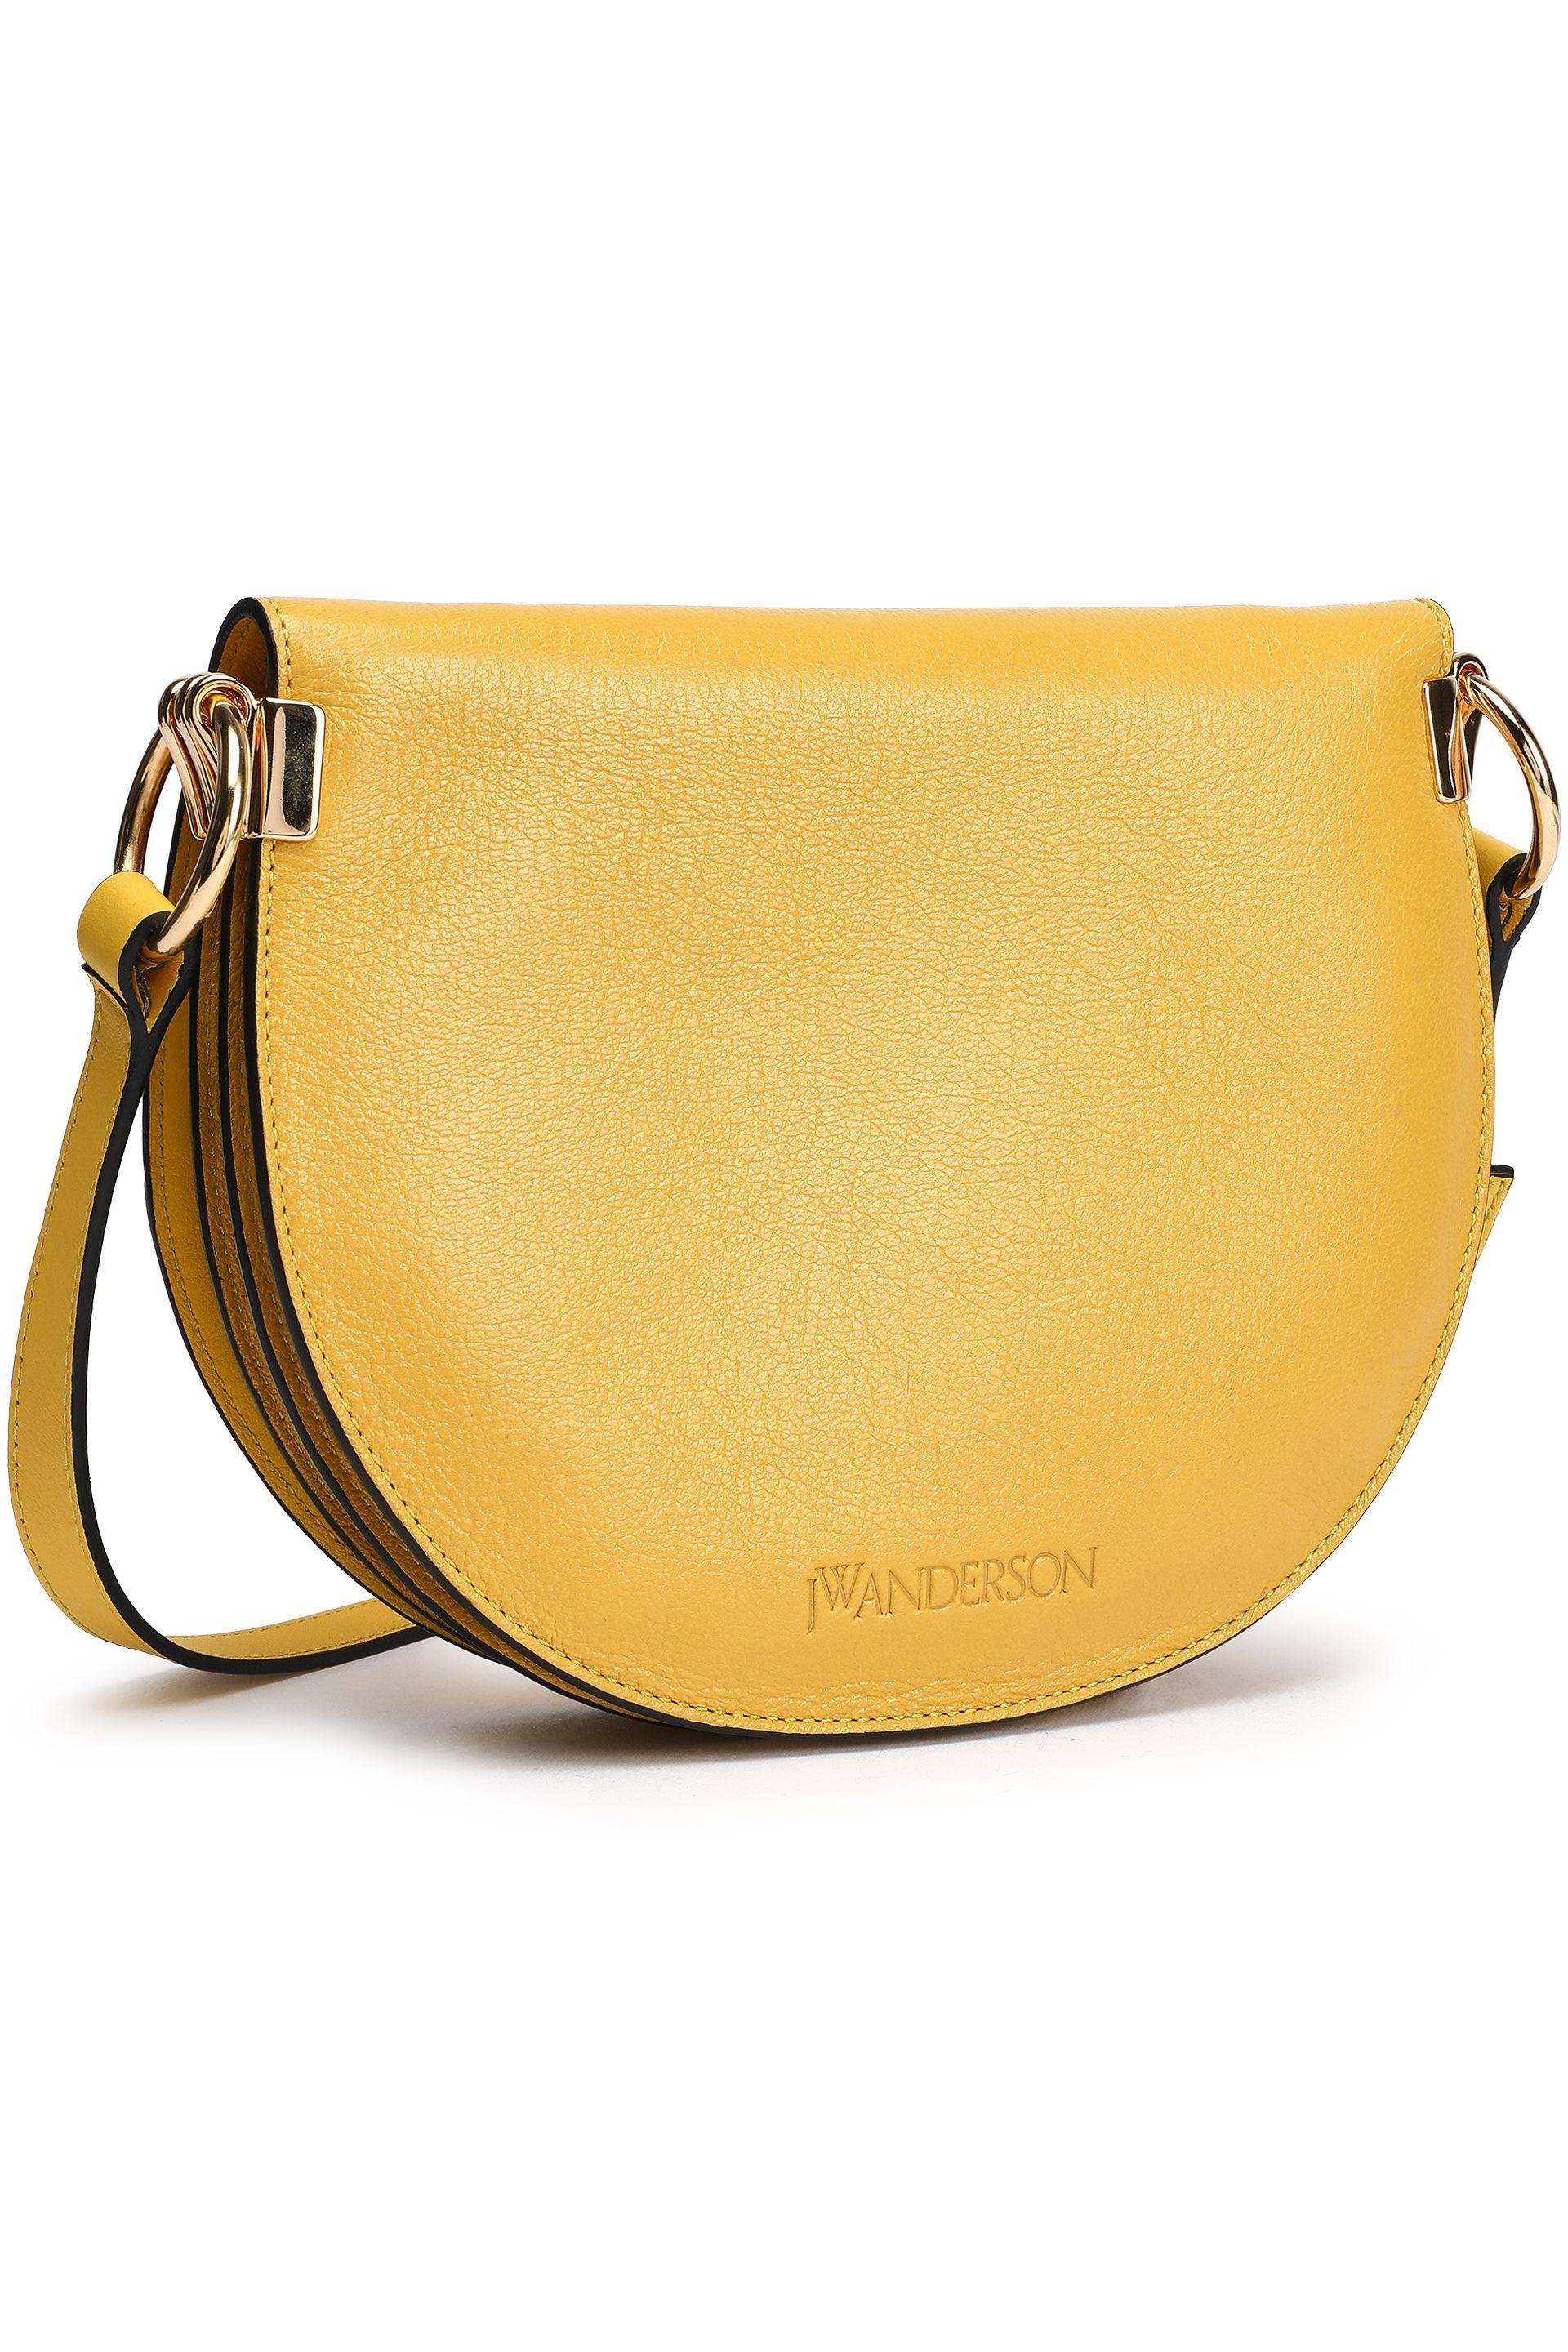 12a52309e0a Lyst - JW Anderson Woman Leather Shoulder Bag Yellow in Yellow